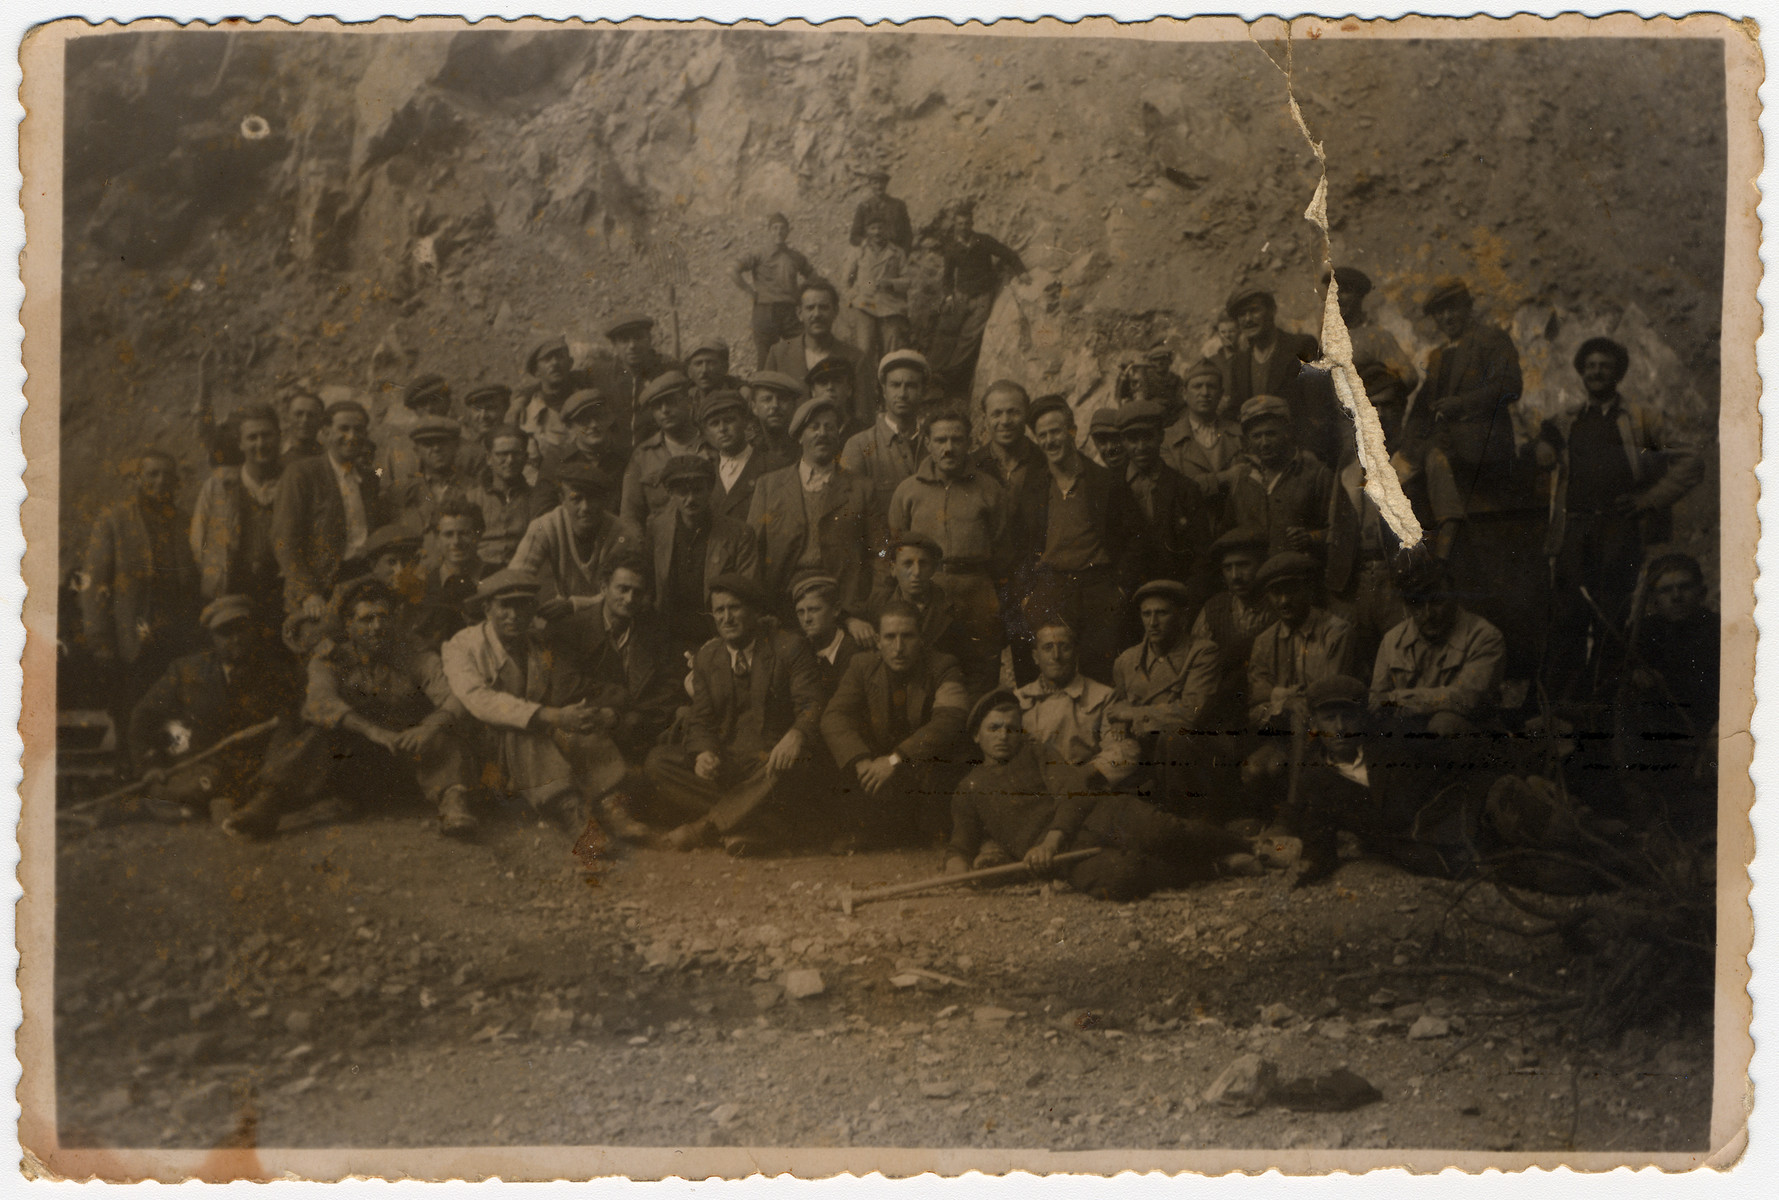 Group portrait of Jewish forced laborers in Bulgaria.